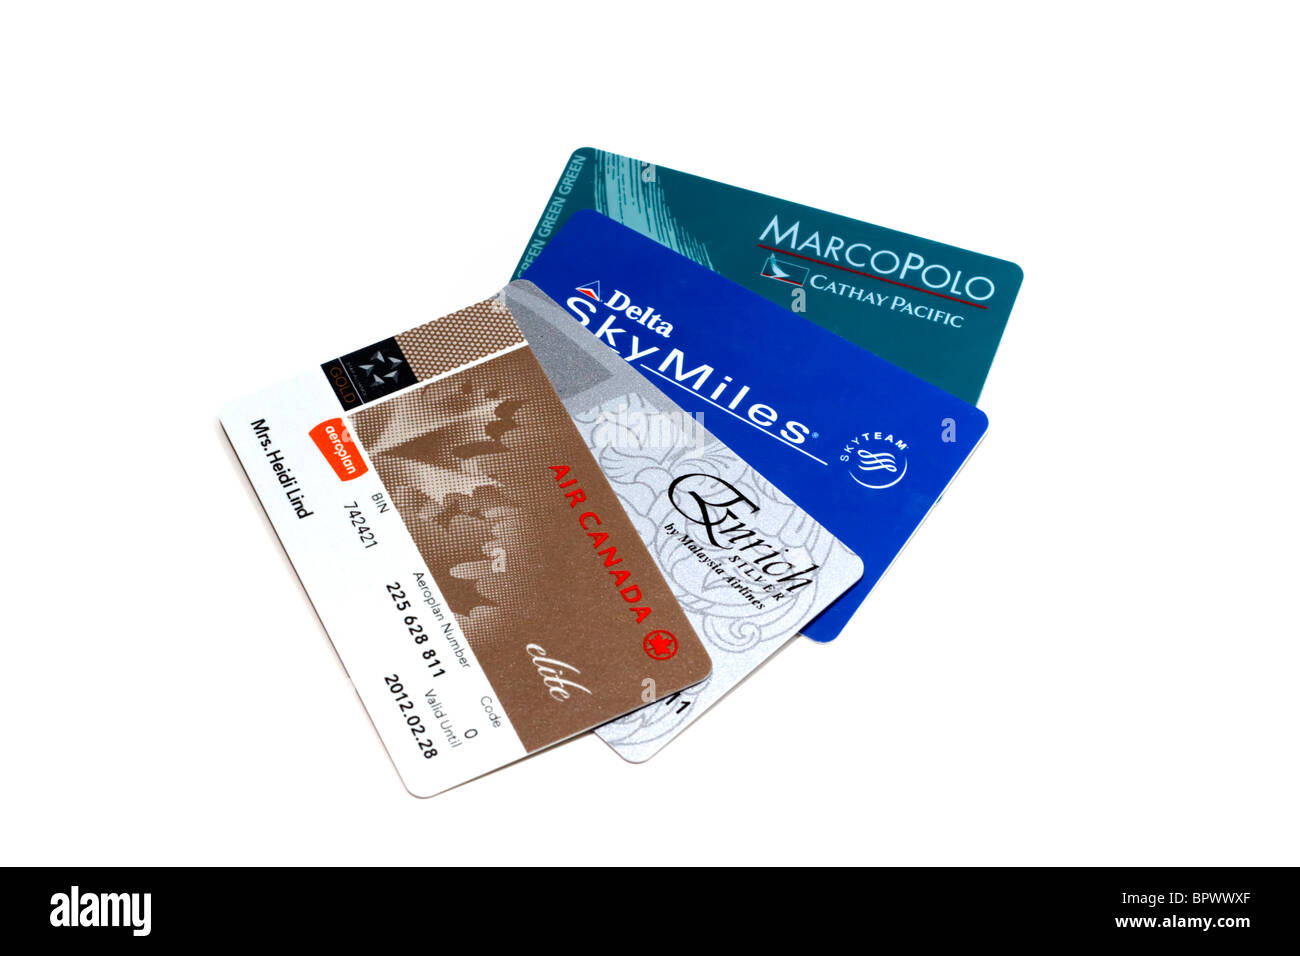 An assortment of  airline frequent flyer membership cards on a white background - Stock Image